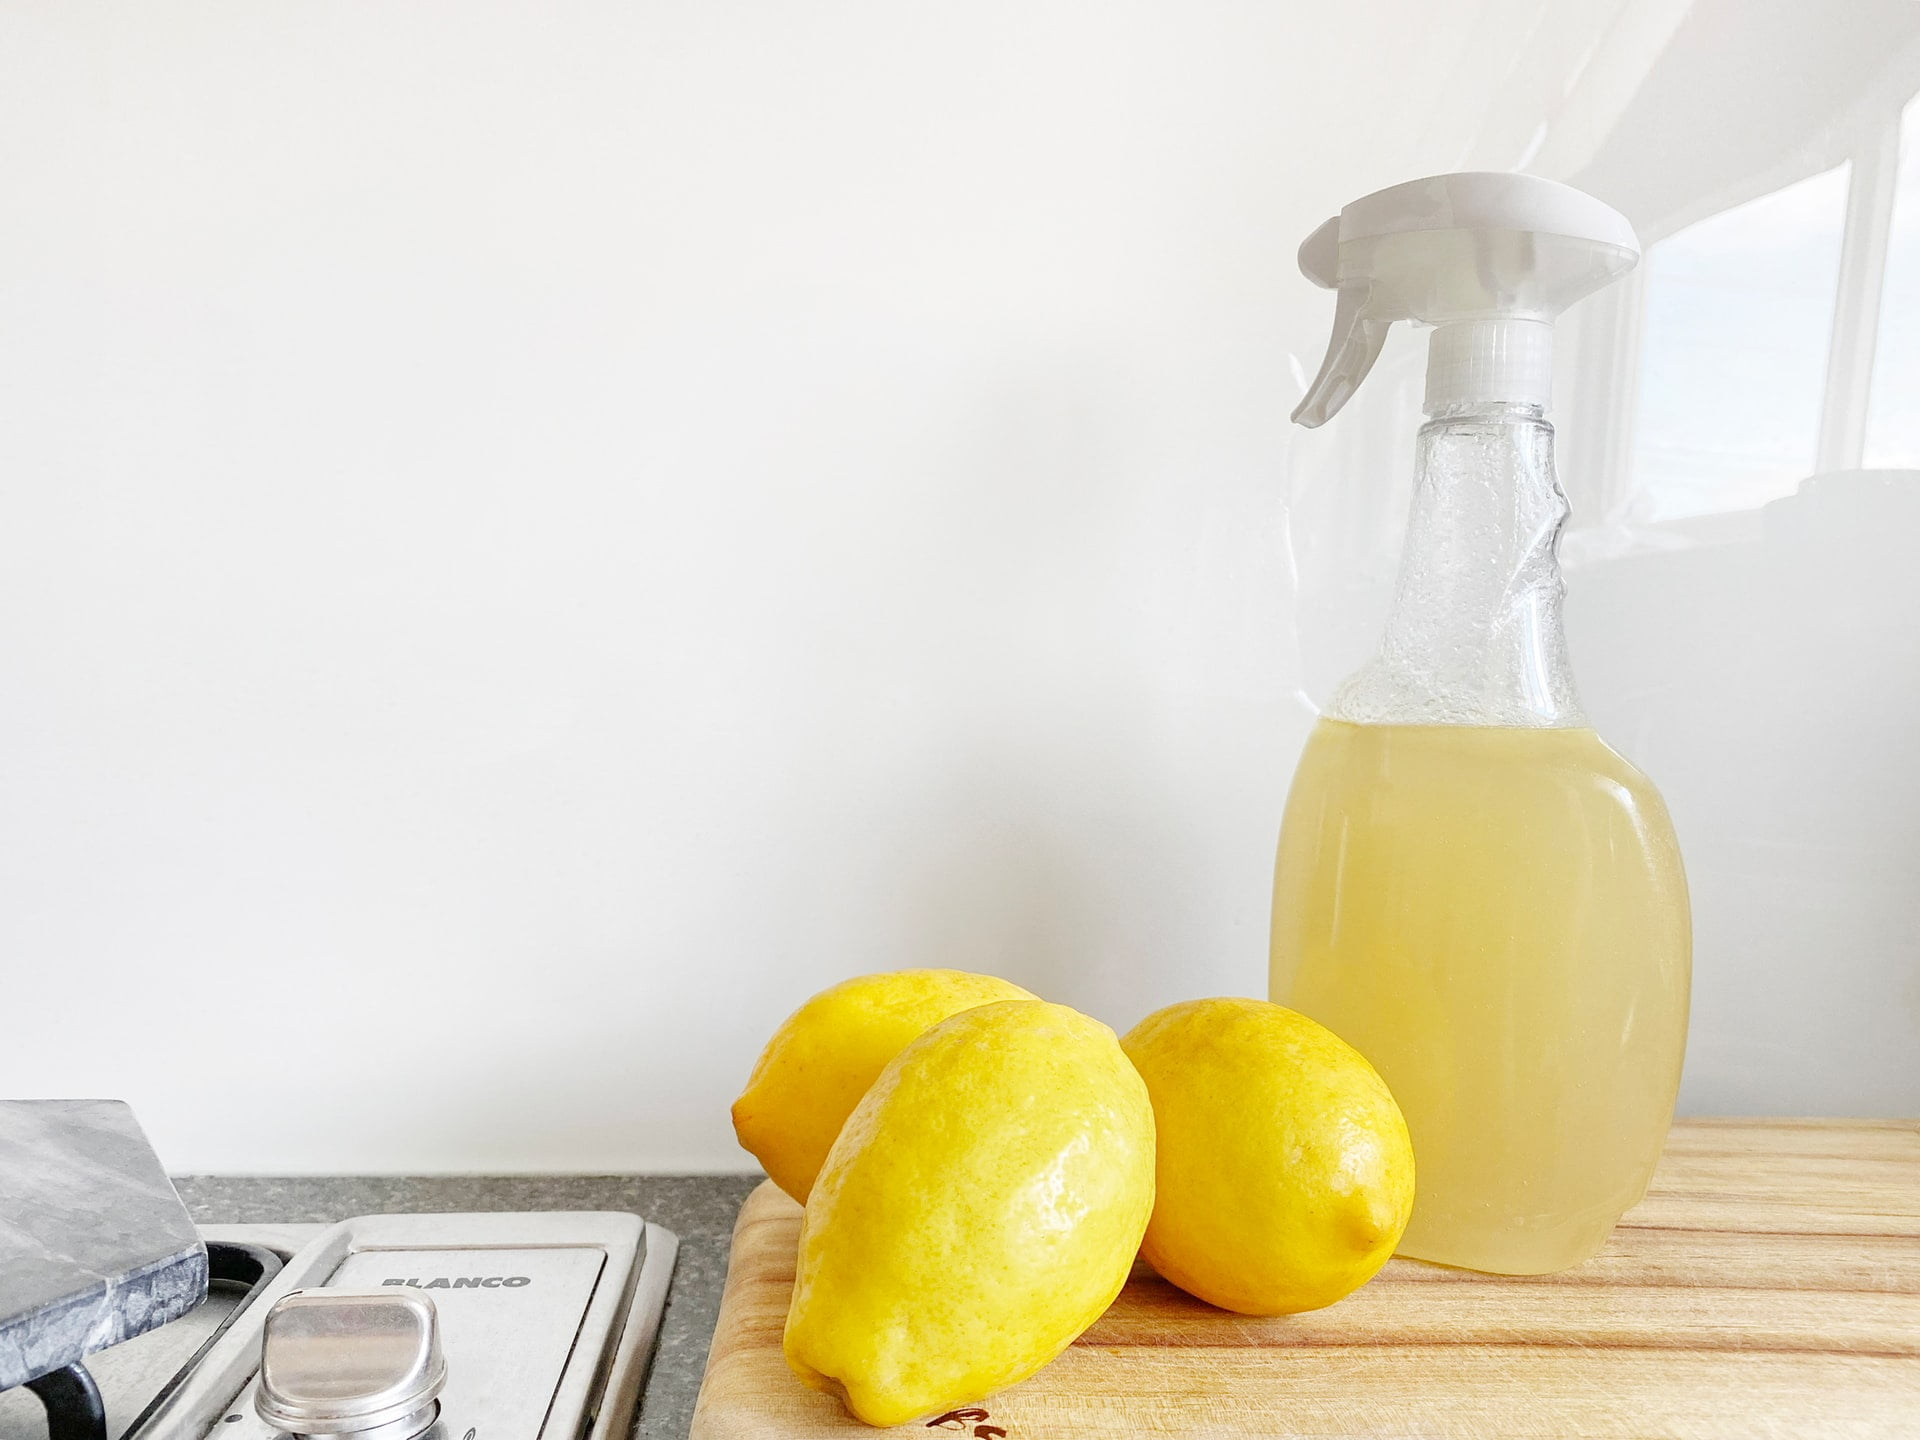 lemons, cleaning product, kitchen